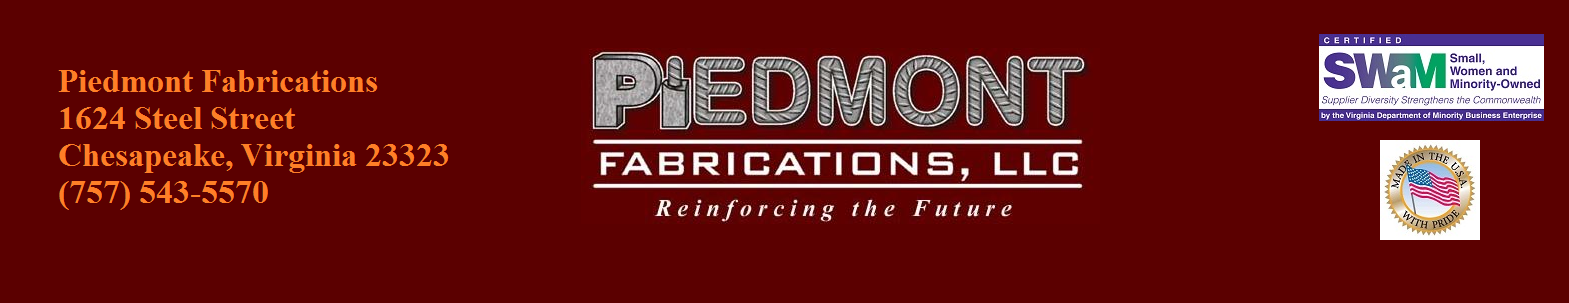 About Piedmont Fabrications suppling rebar, reinforcing bar